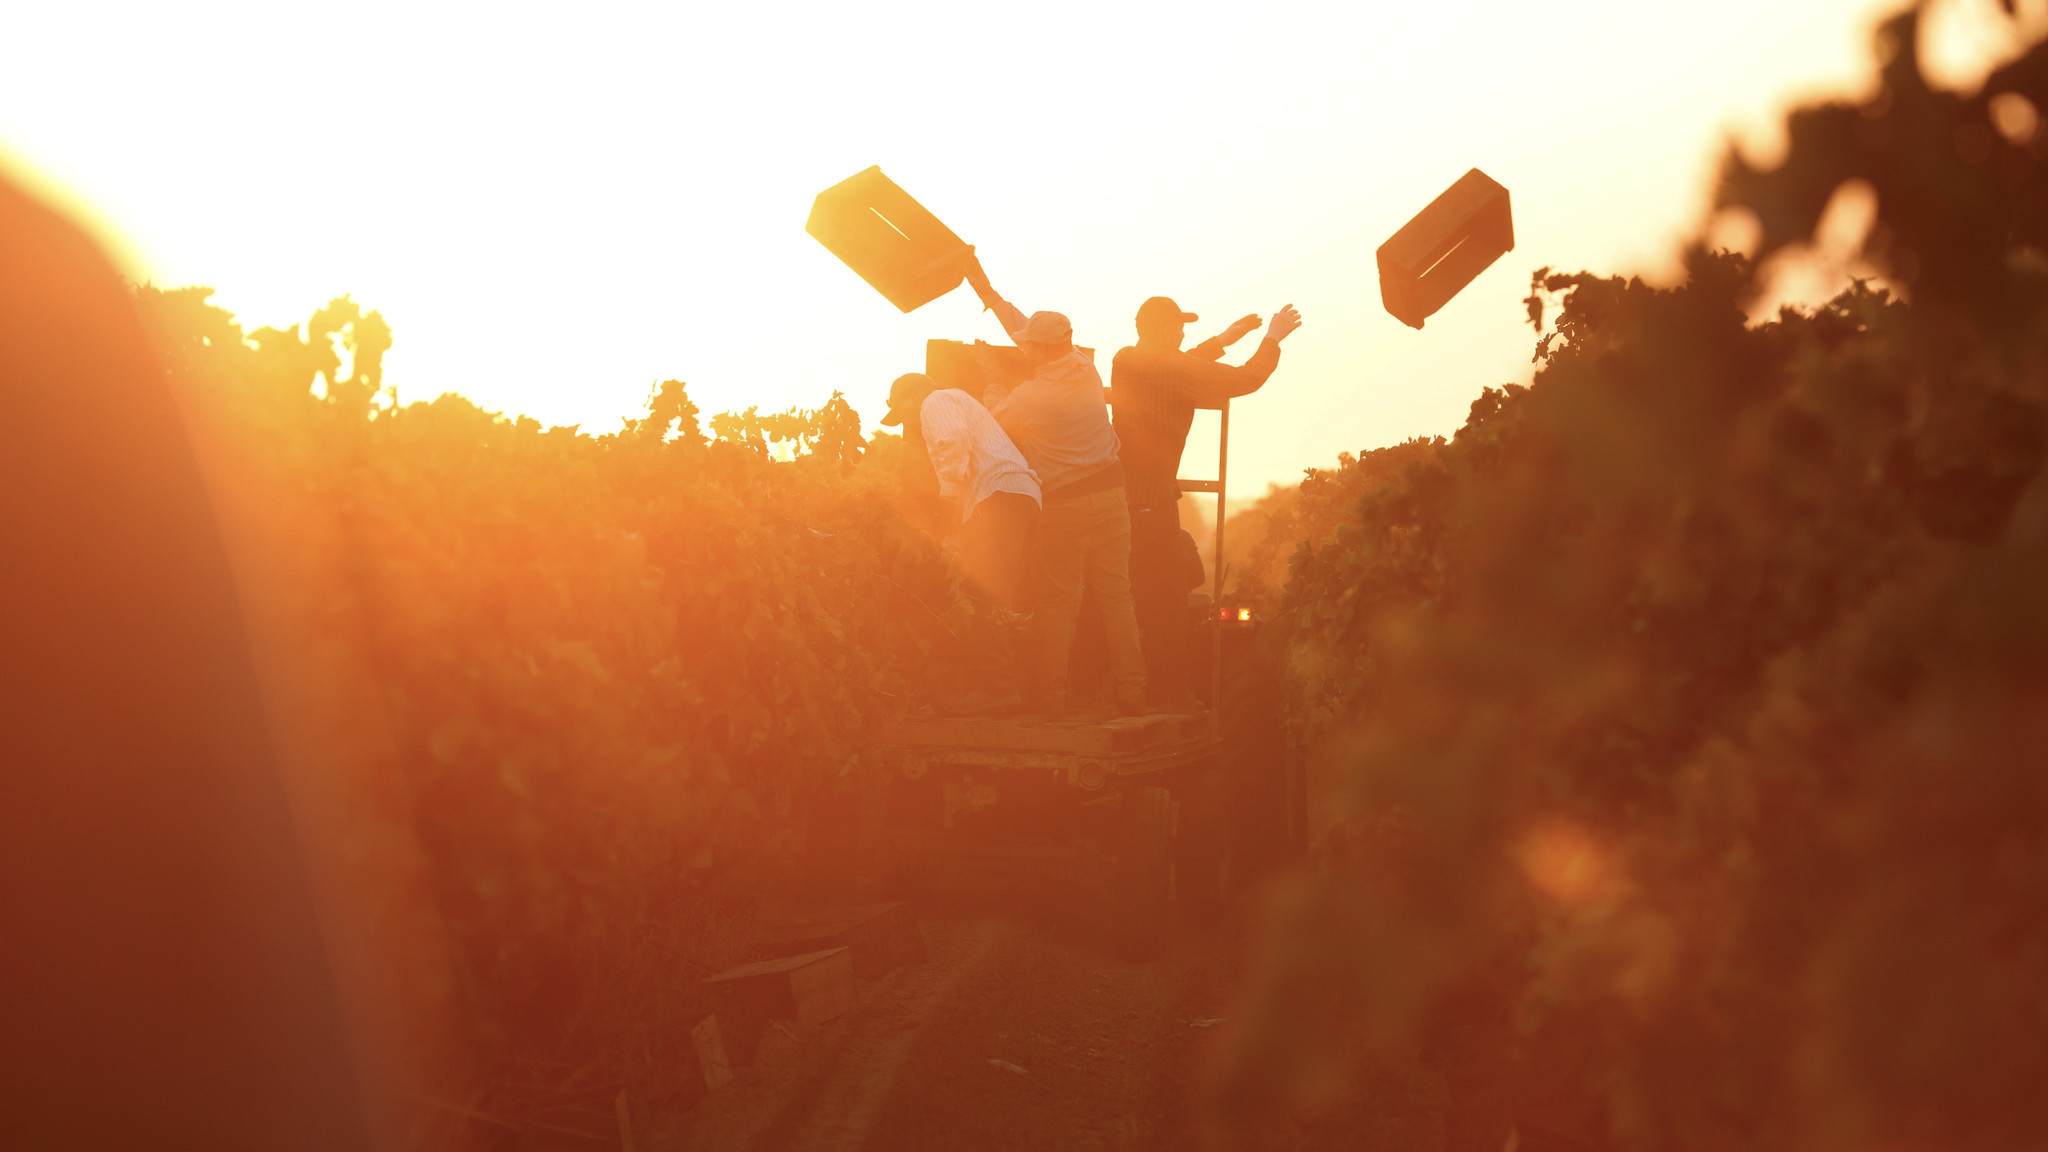 Farmworkers toss wooden crates into the fields for workers to use in picking grapes in Madera.